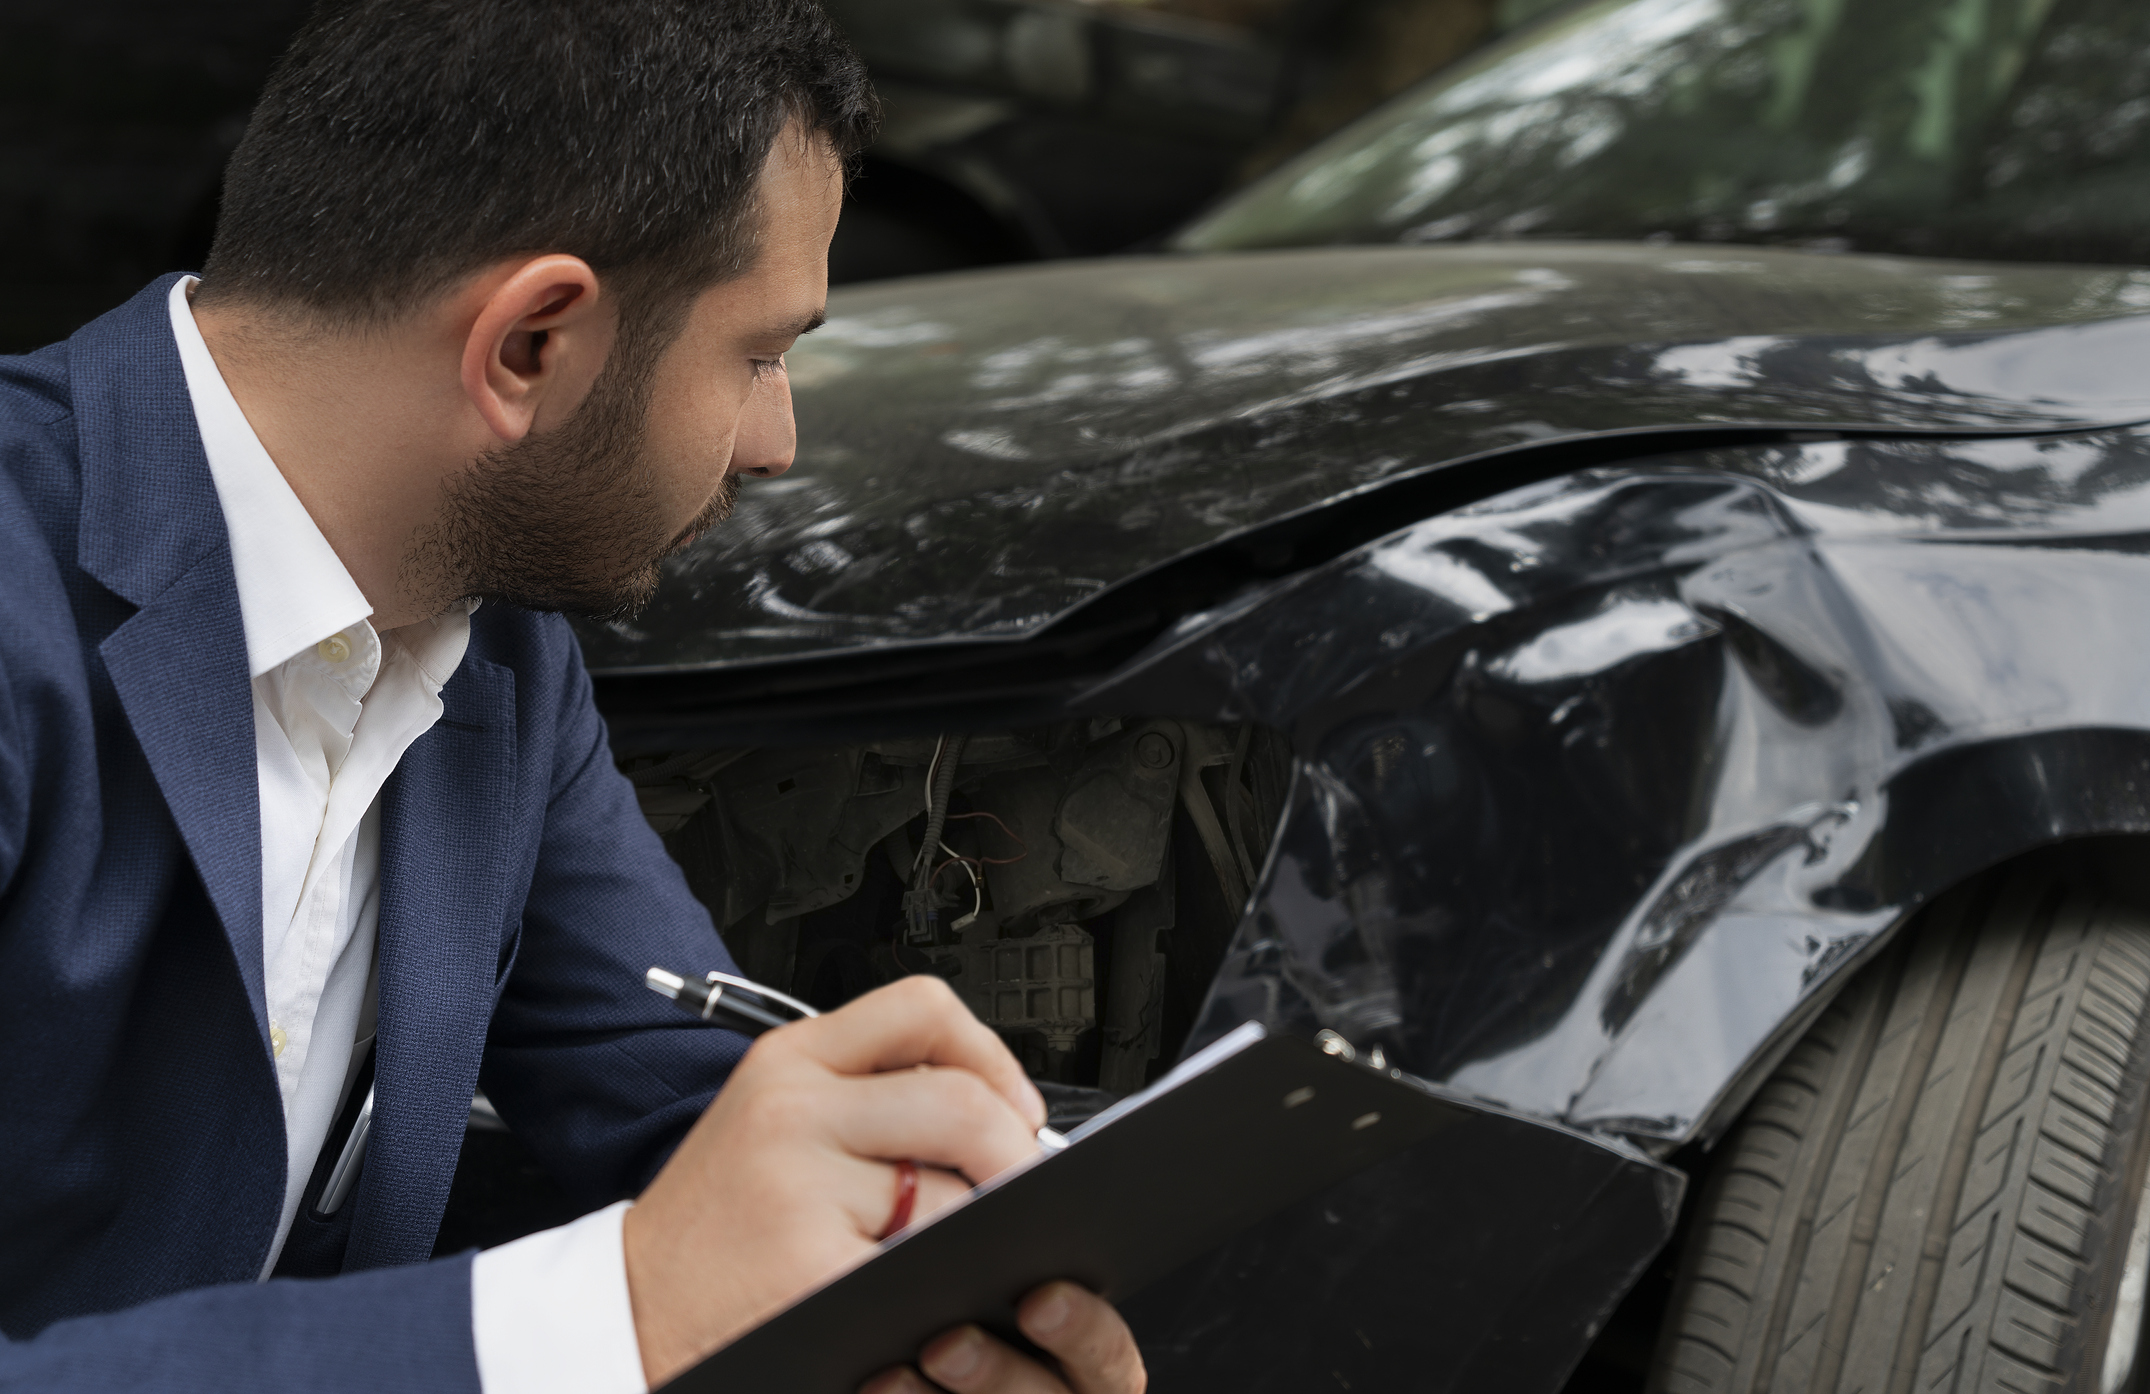 Tips To Help You Make Decisions About Auto Insurance